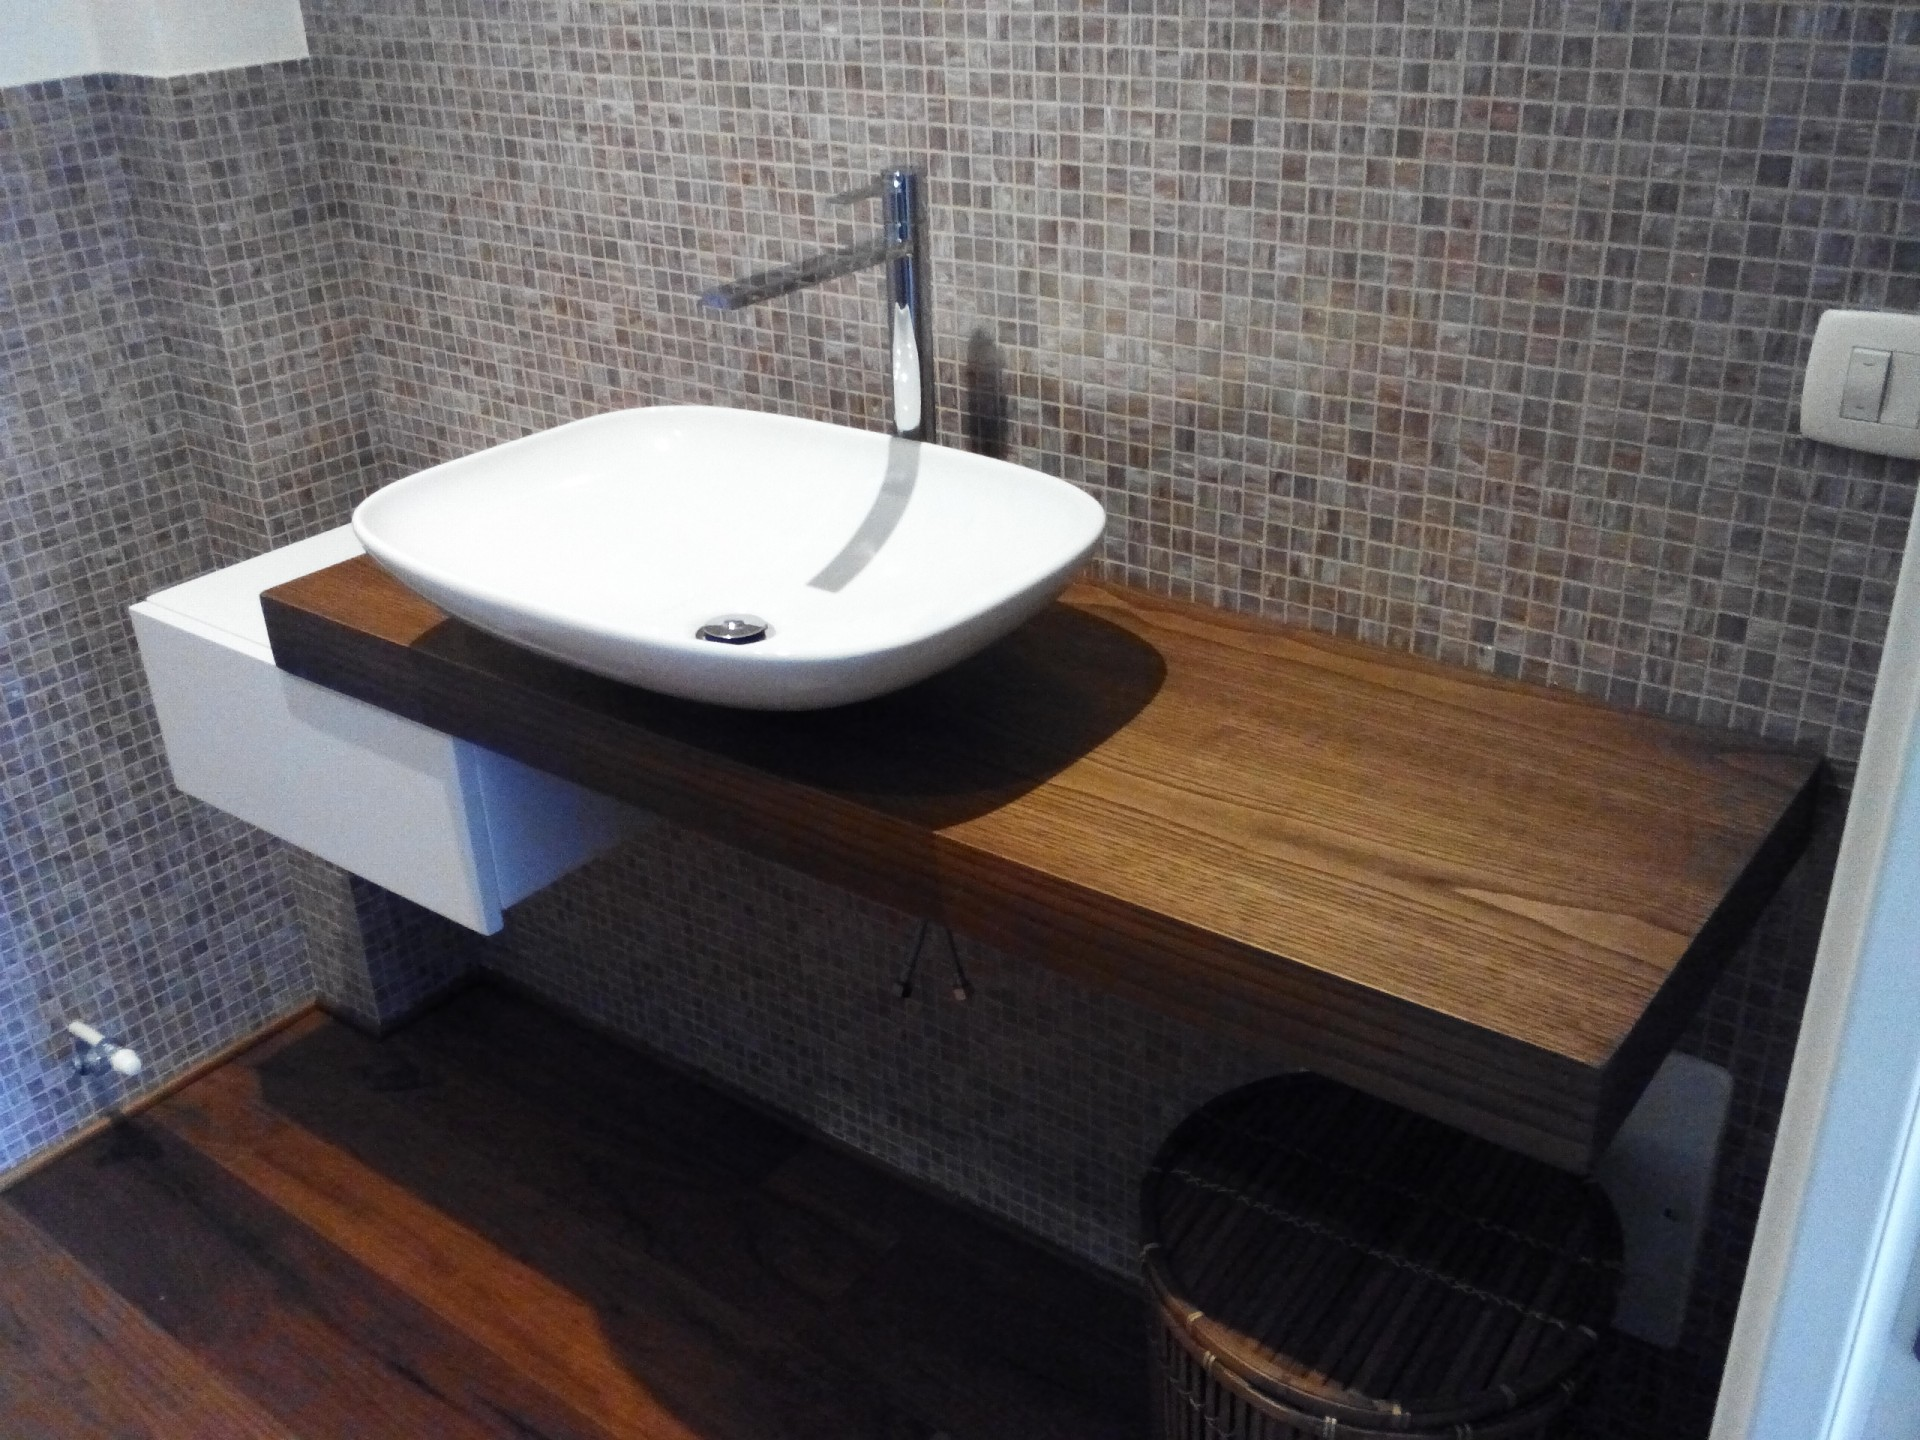 Emejing mobile bagno in legno images for Fadini mobili